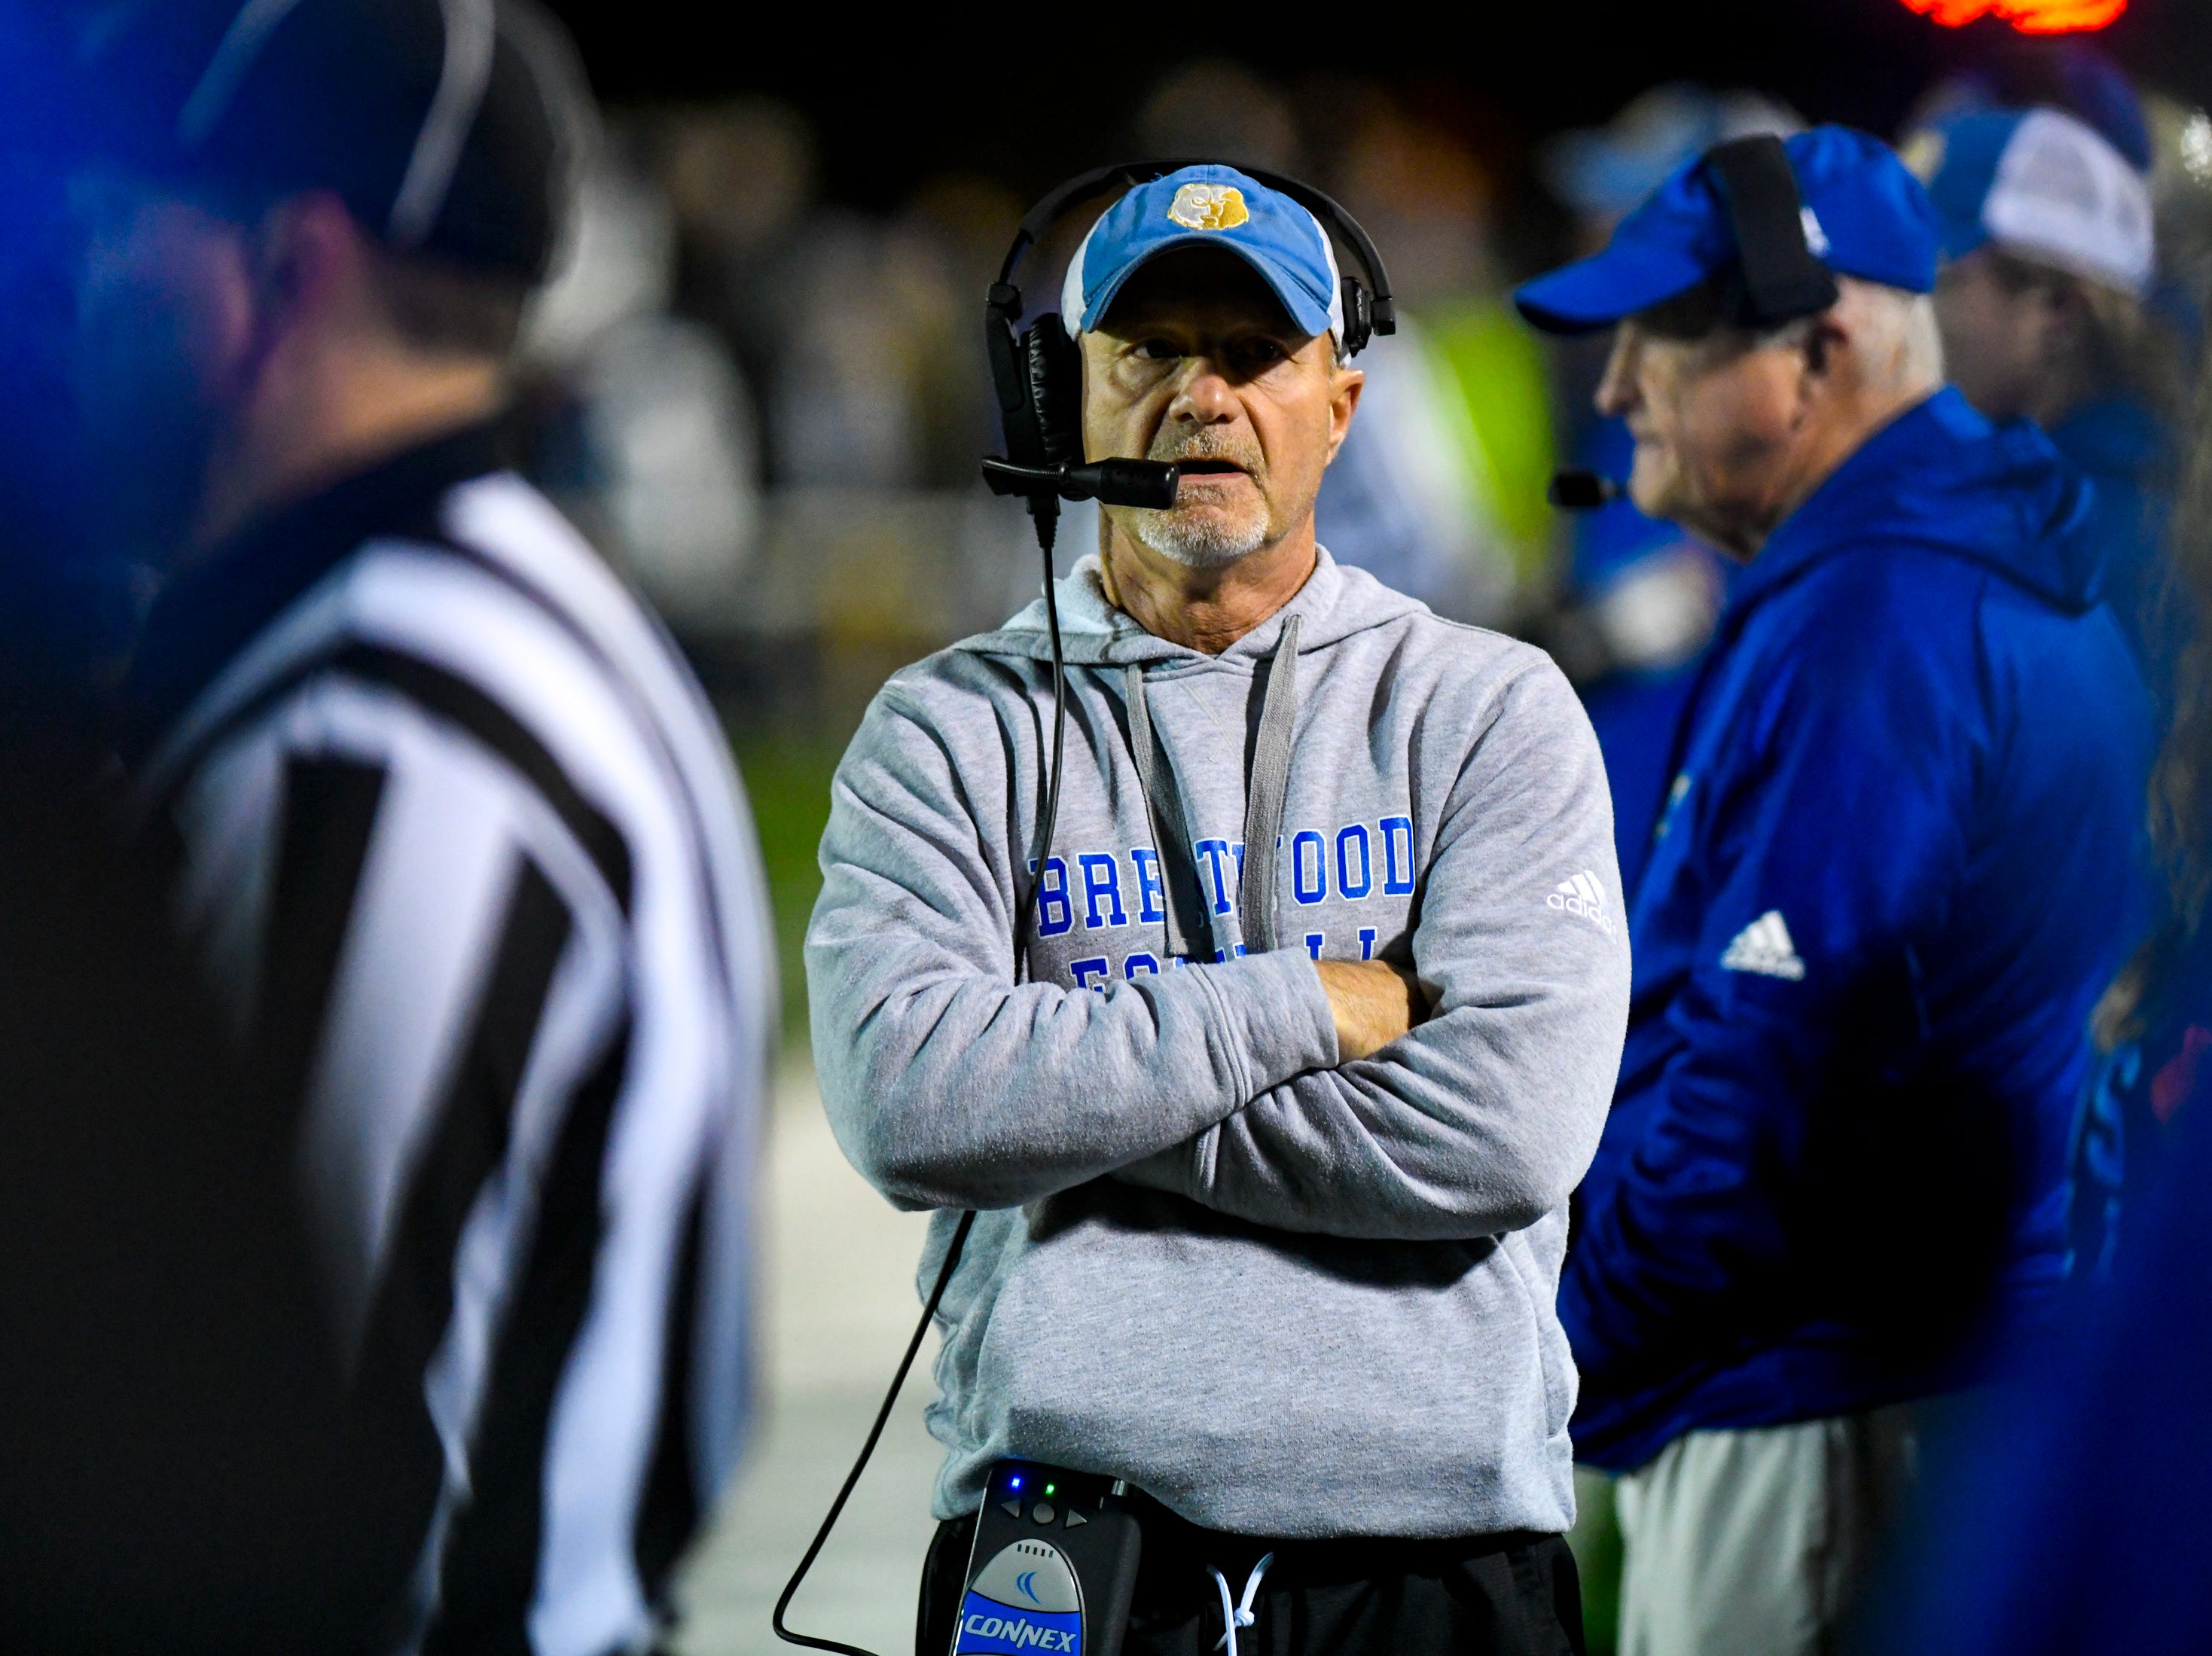 Brentwood's head coach Ron Crawford during Brentwood's game against Ravenwood at Brentwood High School in Brentwood on Friday, Nov. 16, 2018.